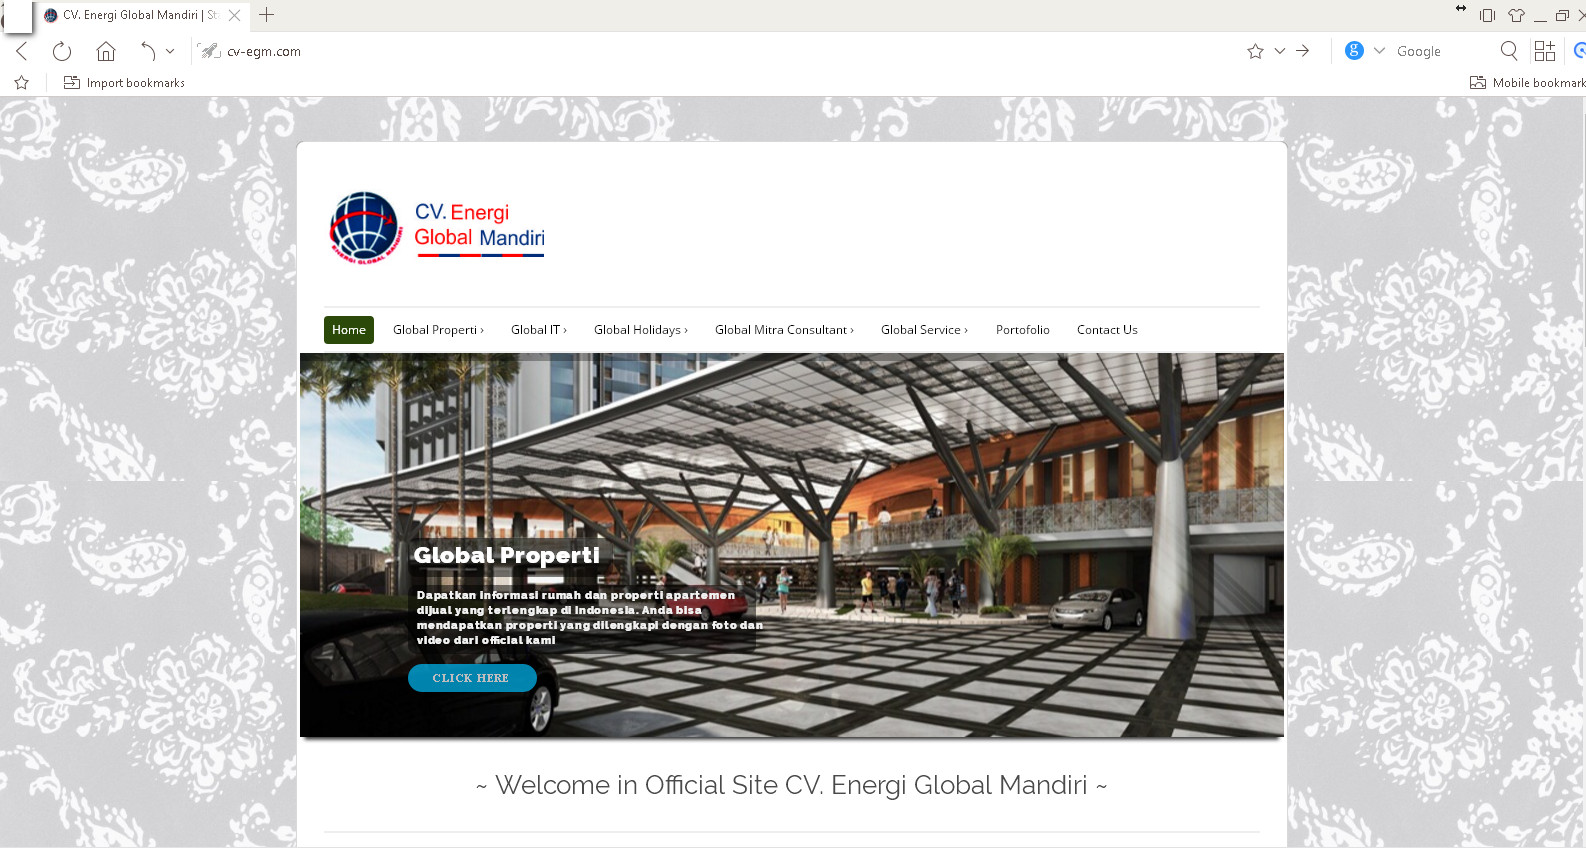 Website company profile cv. energi global mandiri